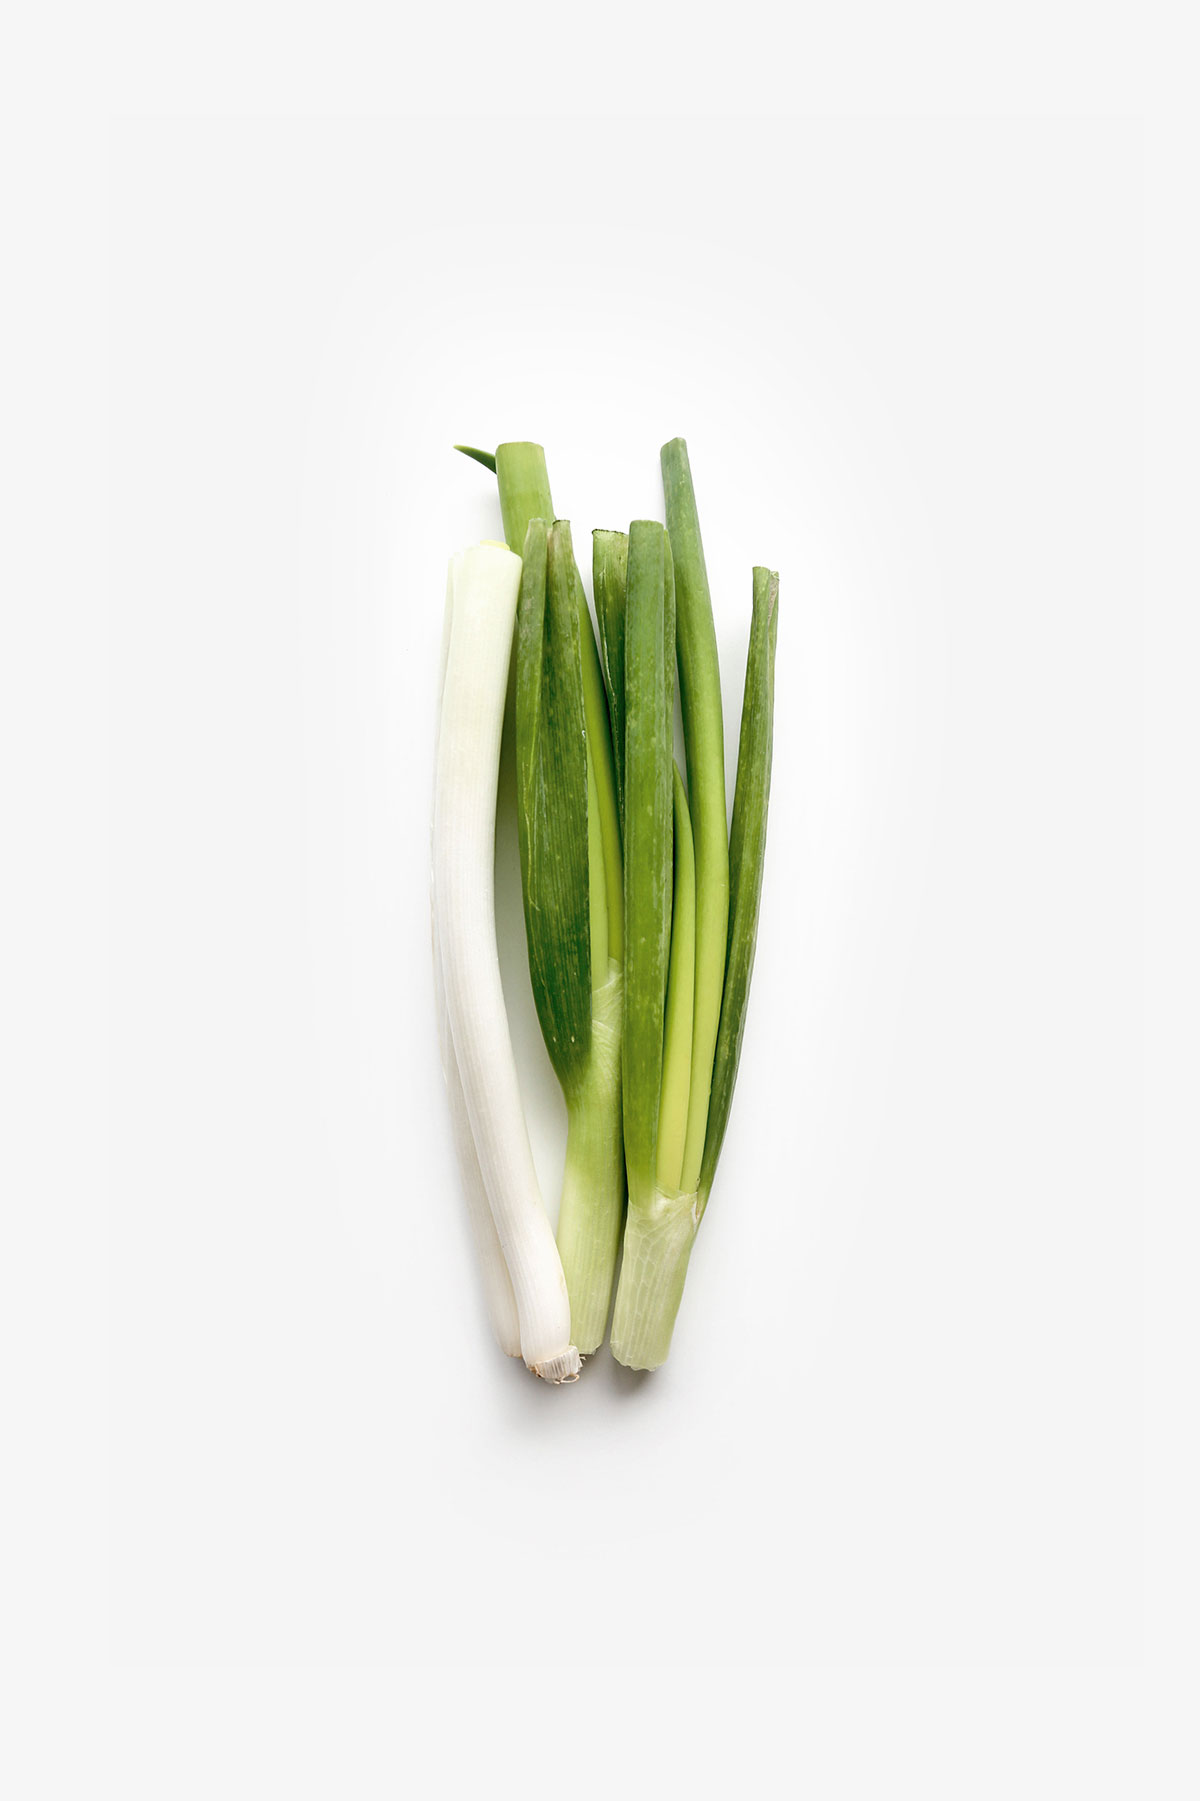 Keto Spring Onion, a guide to keto foods for low carb. keto, keto ingredients, keto foods, keto produce, keto vegetables, ketogenic diet, keto shopping list, low carb, low carb foods, low carb vegetables, lchf, lchf foods